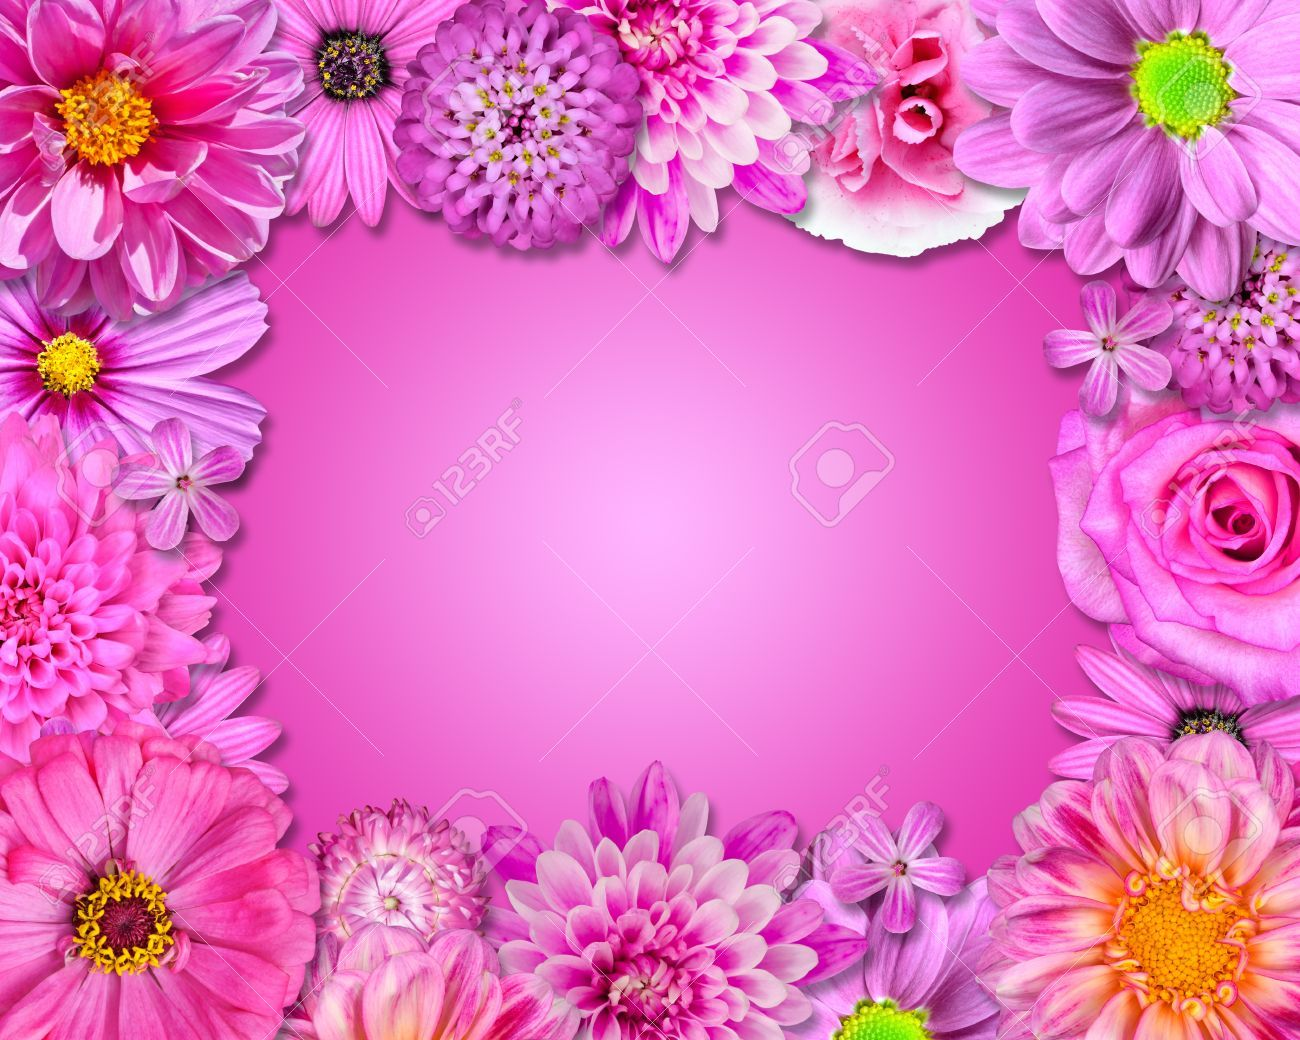 Great pink flower wallpaper laptopphone backgrounds pinterest great pink flower wallpaper laptopphone backgrounds pinterest mightylinksfo